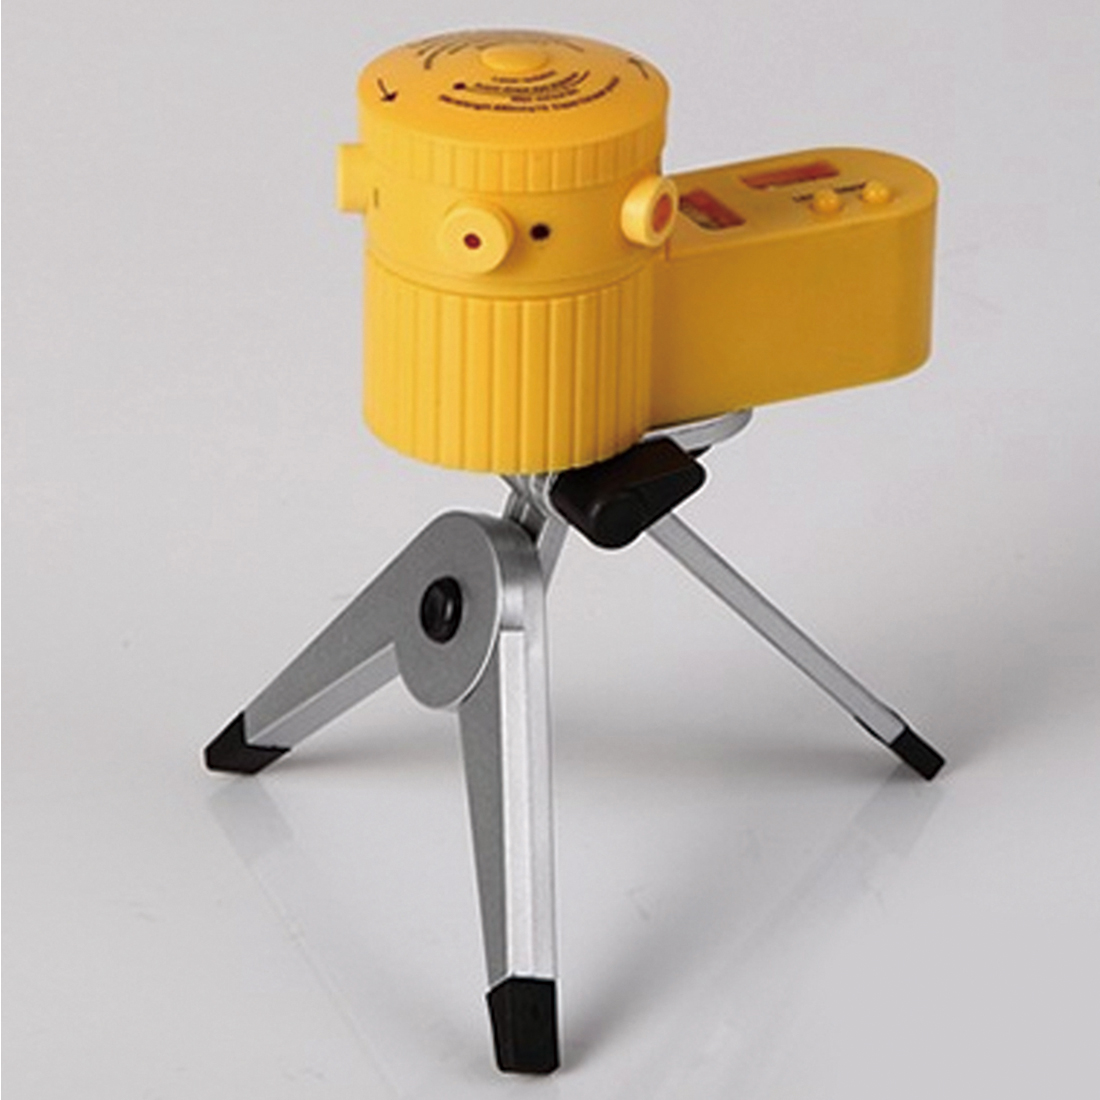 New Brand Worldwide Multifunction Cross Laser Level Leveler Vertical Horizontal Line Tool With Tripod